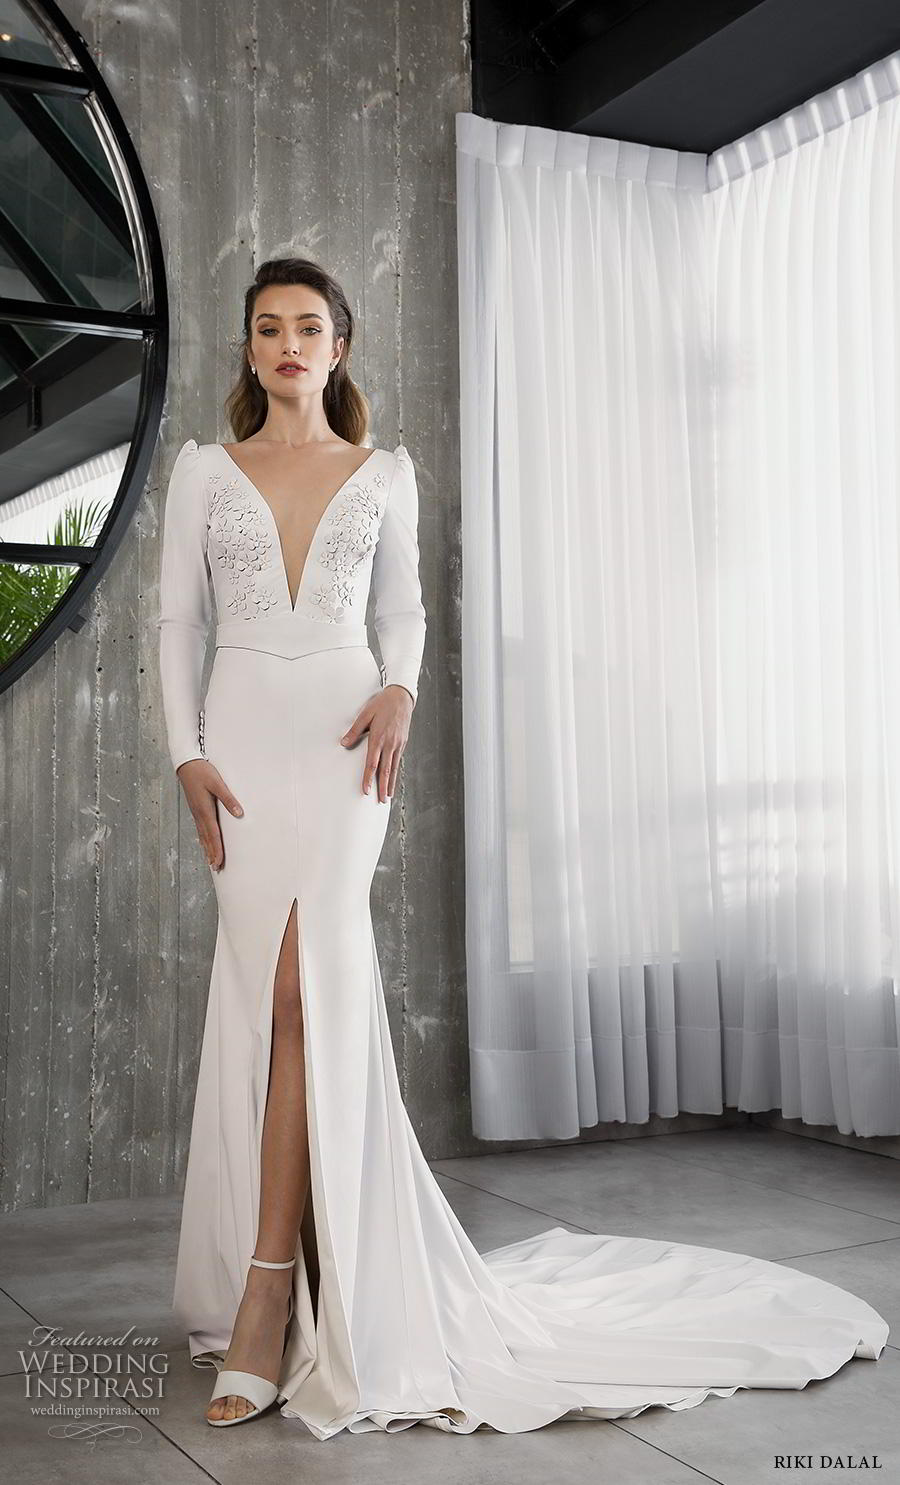 riki dalal 2018 glamour bridal long sleeves deep v neck heavily embellished bodice slit skirt simple sheath wedding dress backless v back chapel train (13) mv